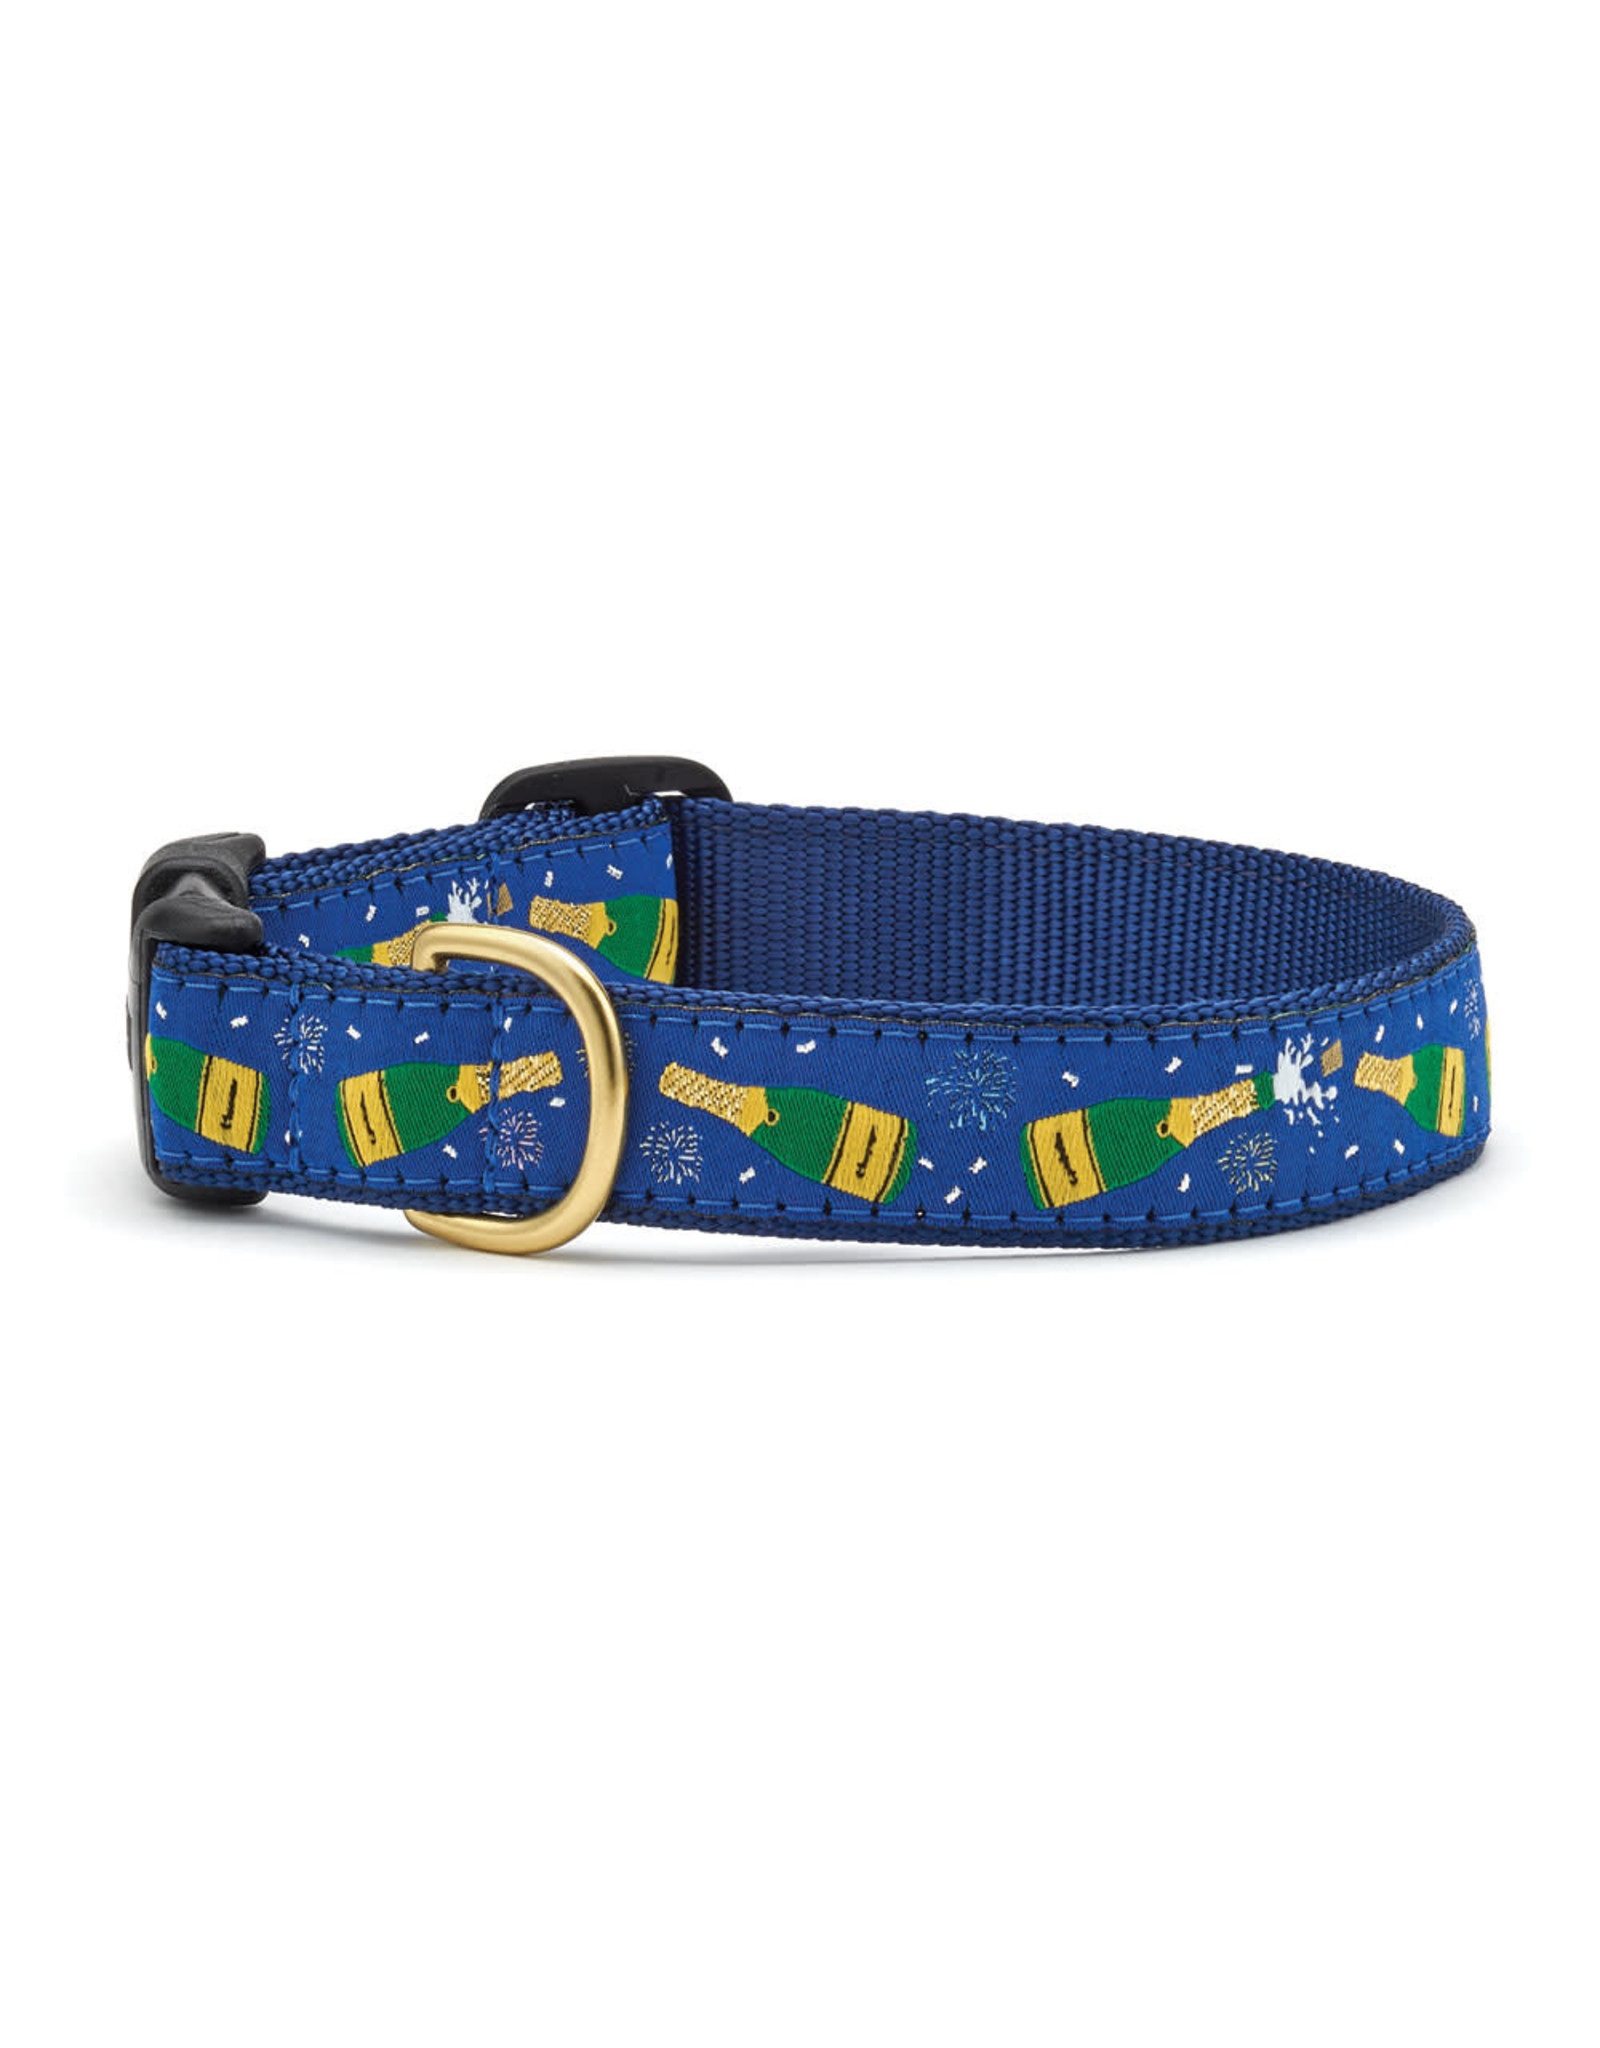 Up Country Champagne Collar Collar: Wide, L